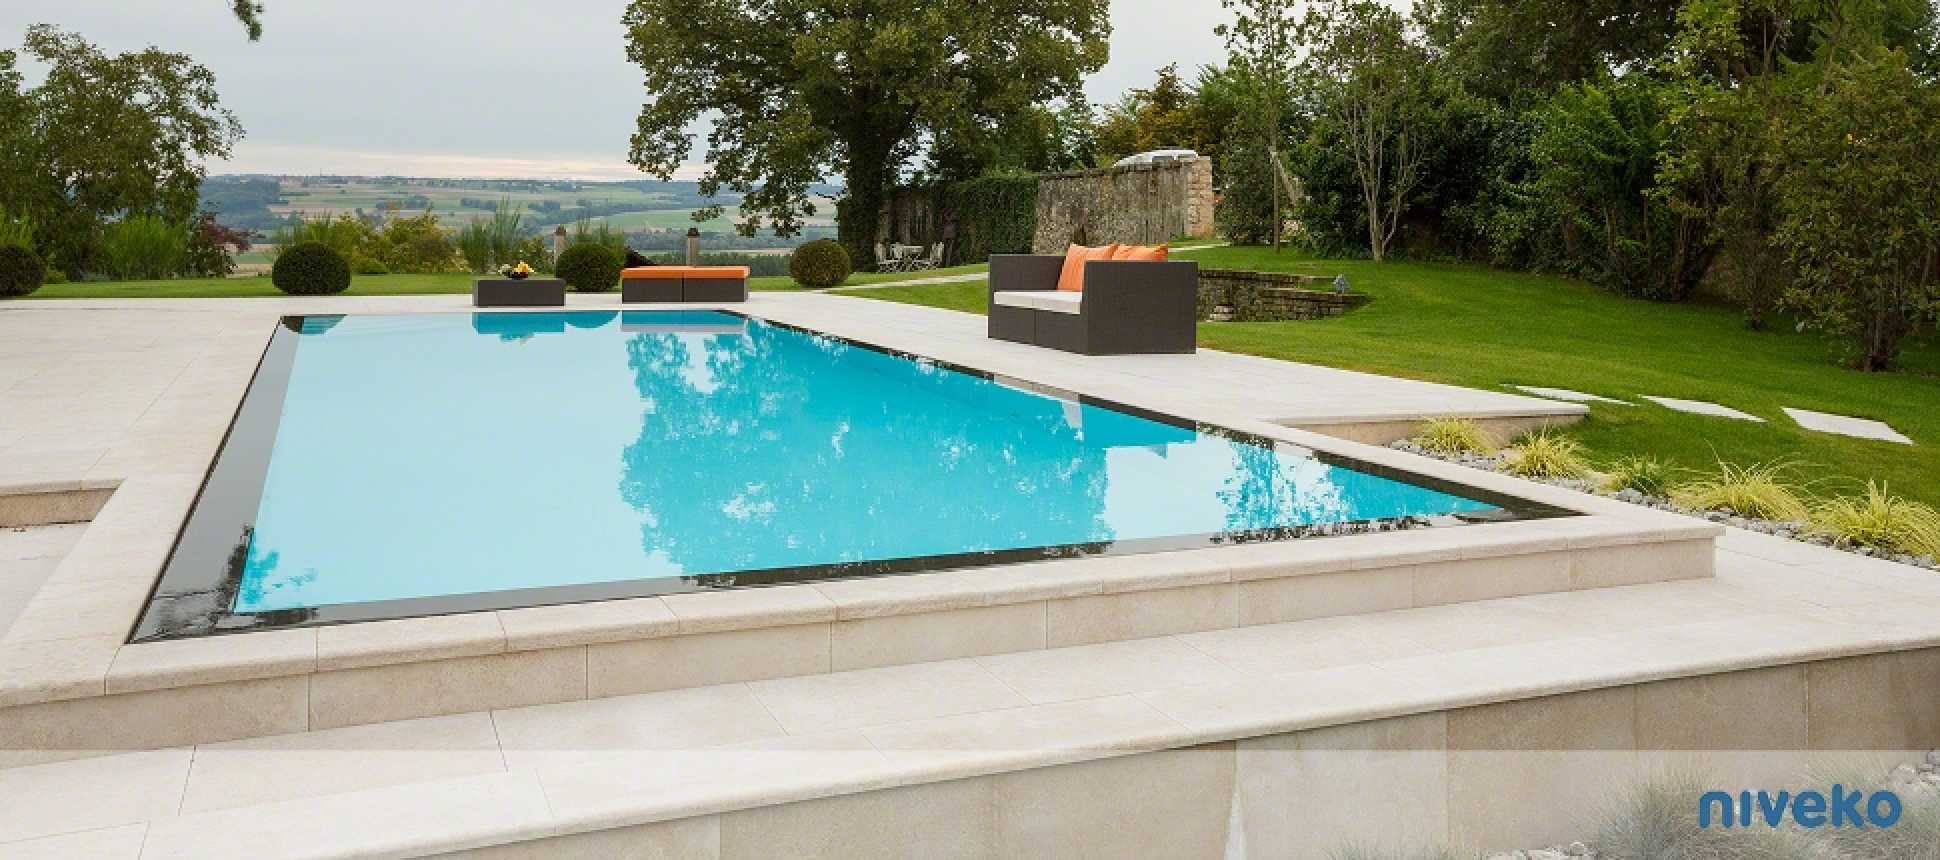 Gfk Pool Lebensdauer Niveko Pools Polystone Becken Pp Pools Polypropylen